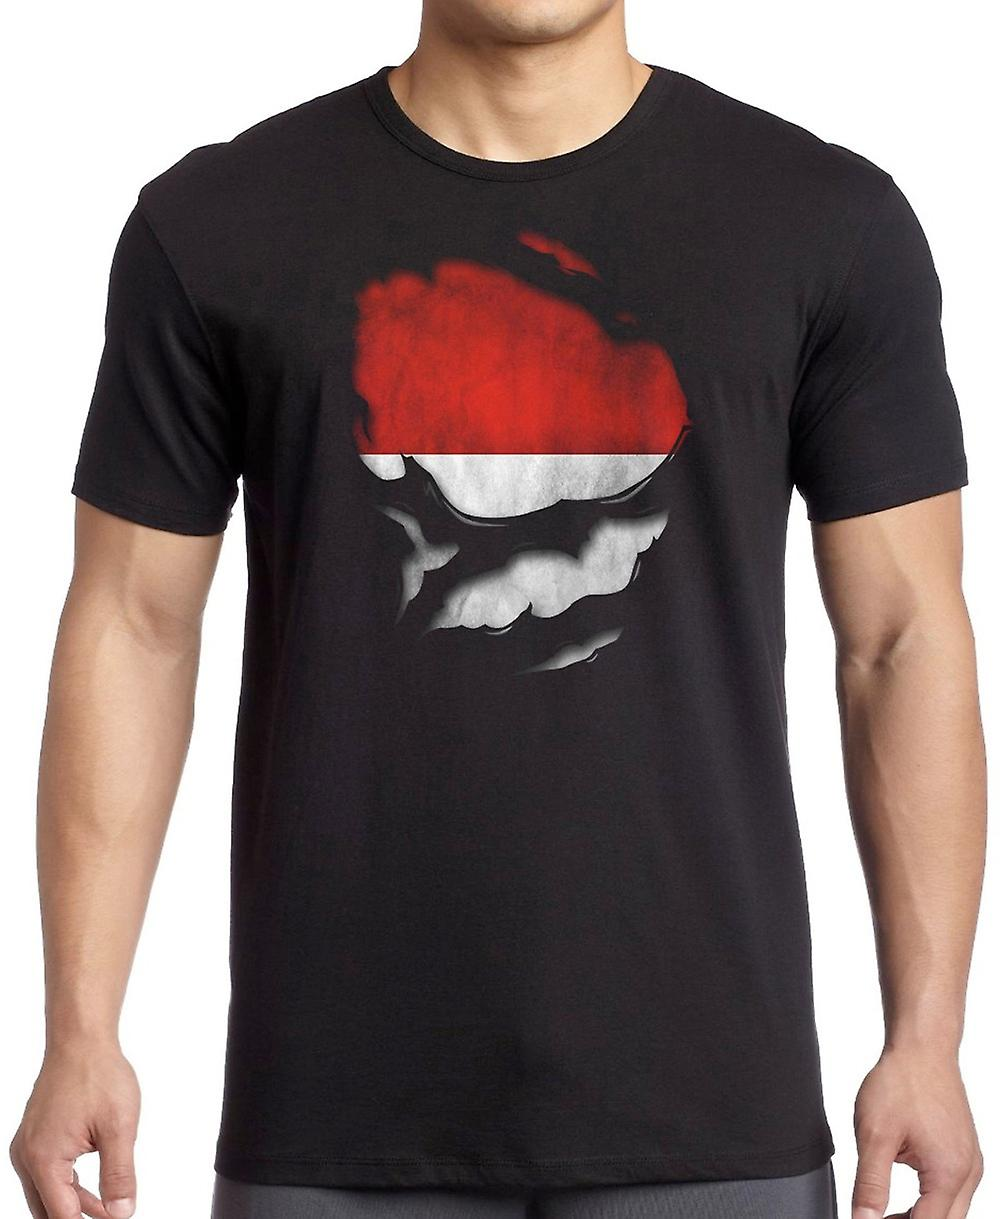 Croatia Croatian Ripped Effect Under Shirt T Shirt